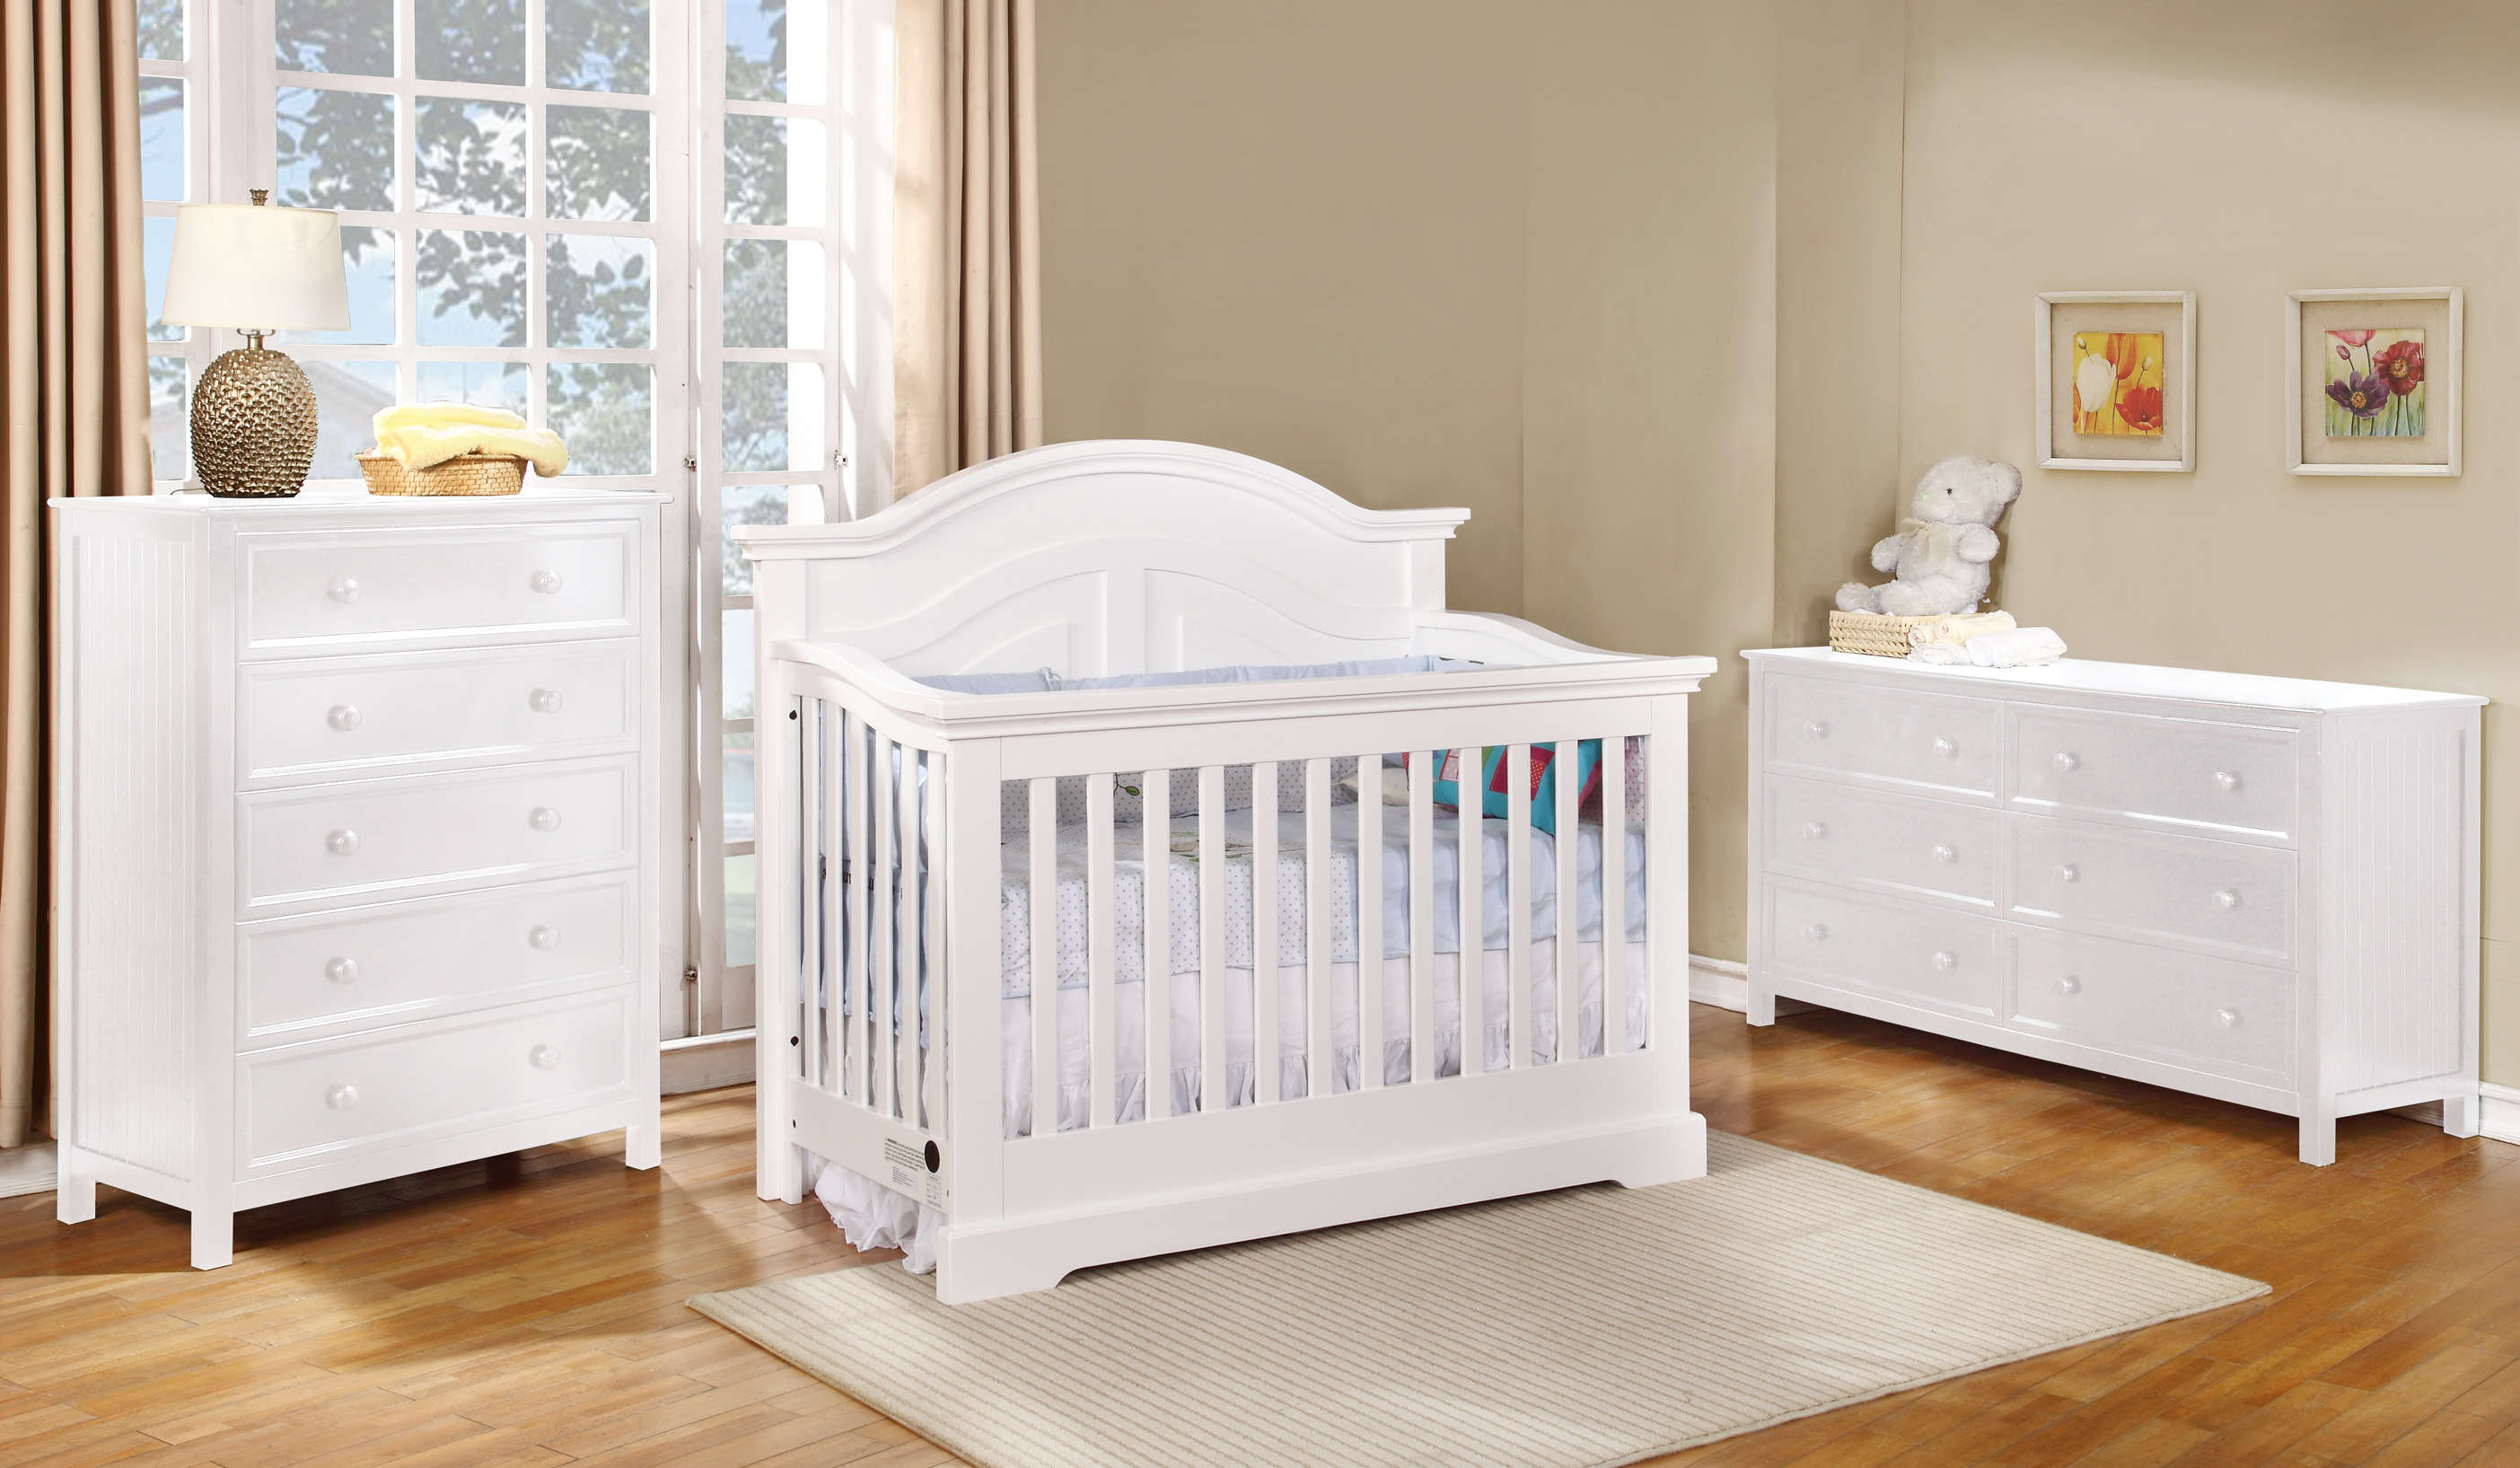 Waterford Curved Panel Conversion Crib with Summerlin Collection White